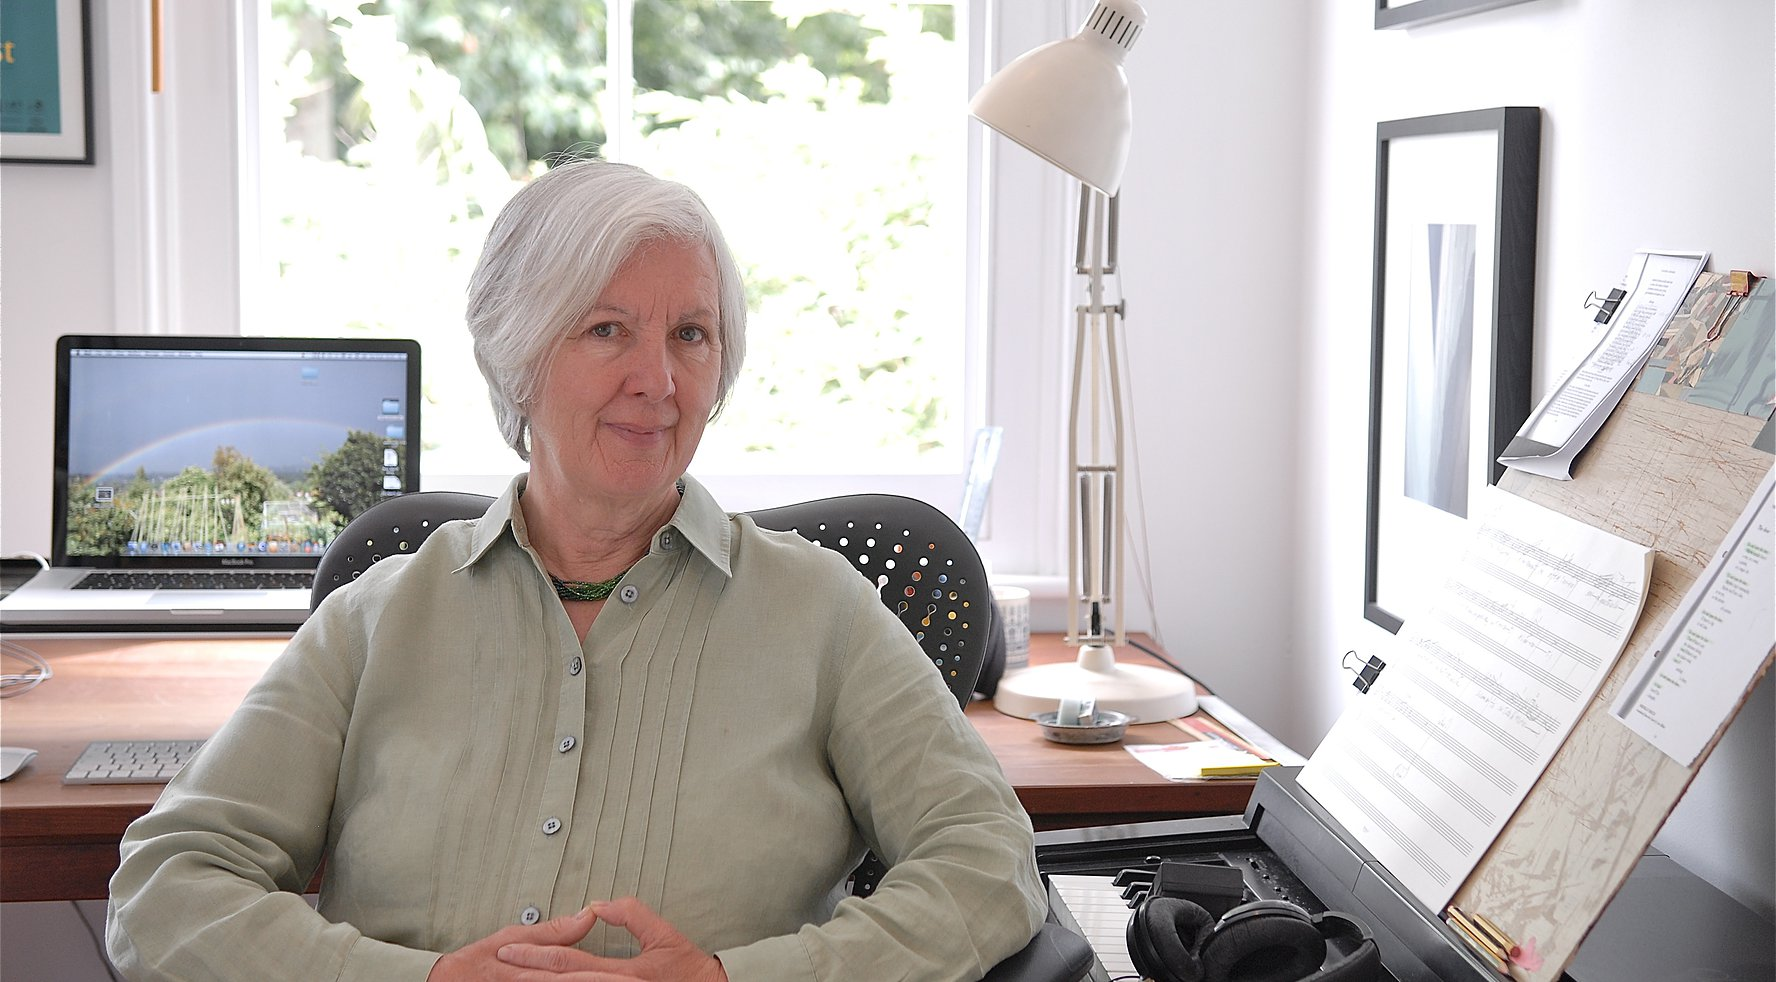 Resonate: Winter Song by Judith Weir